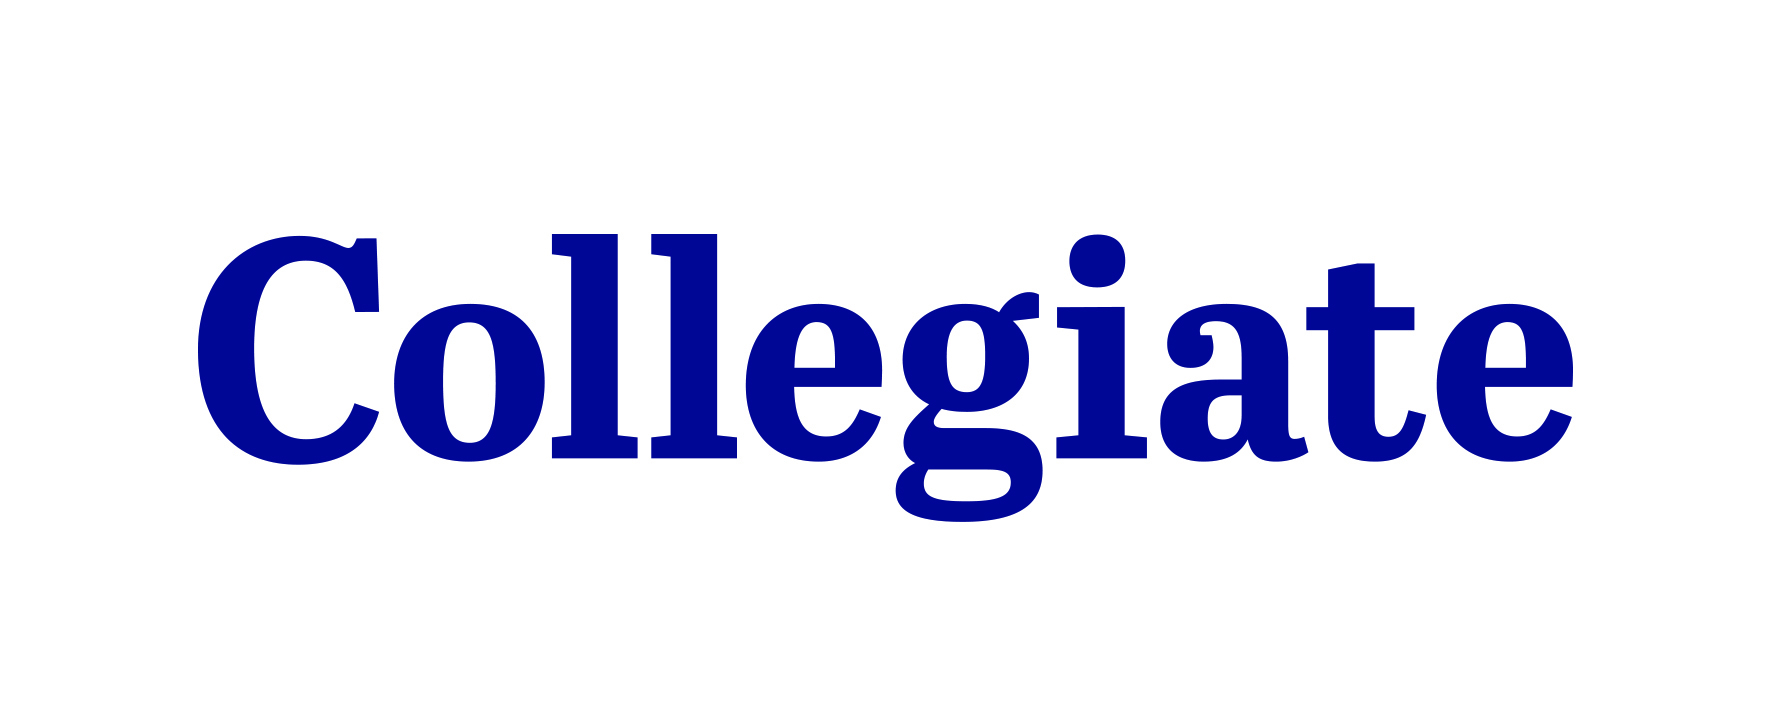 Collegiate_Wordmark_2014_Blue_CMYK